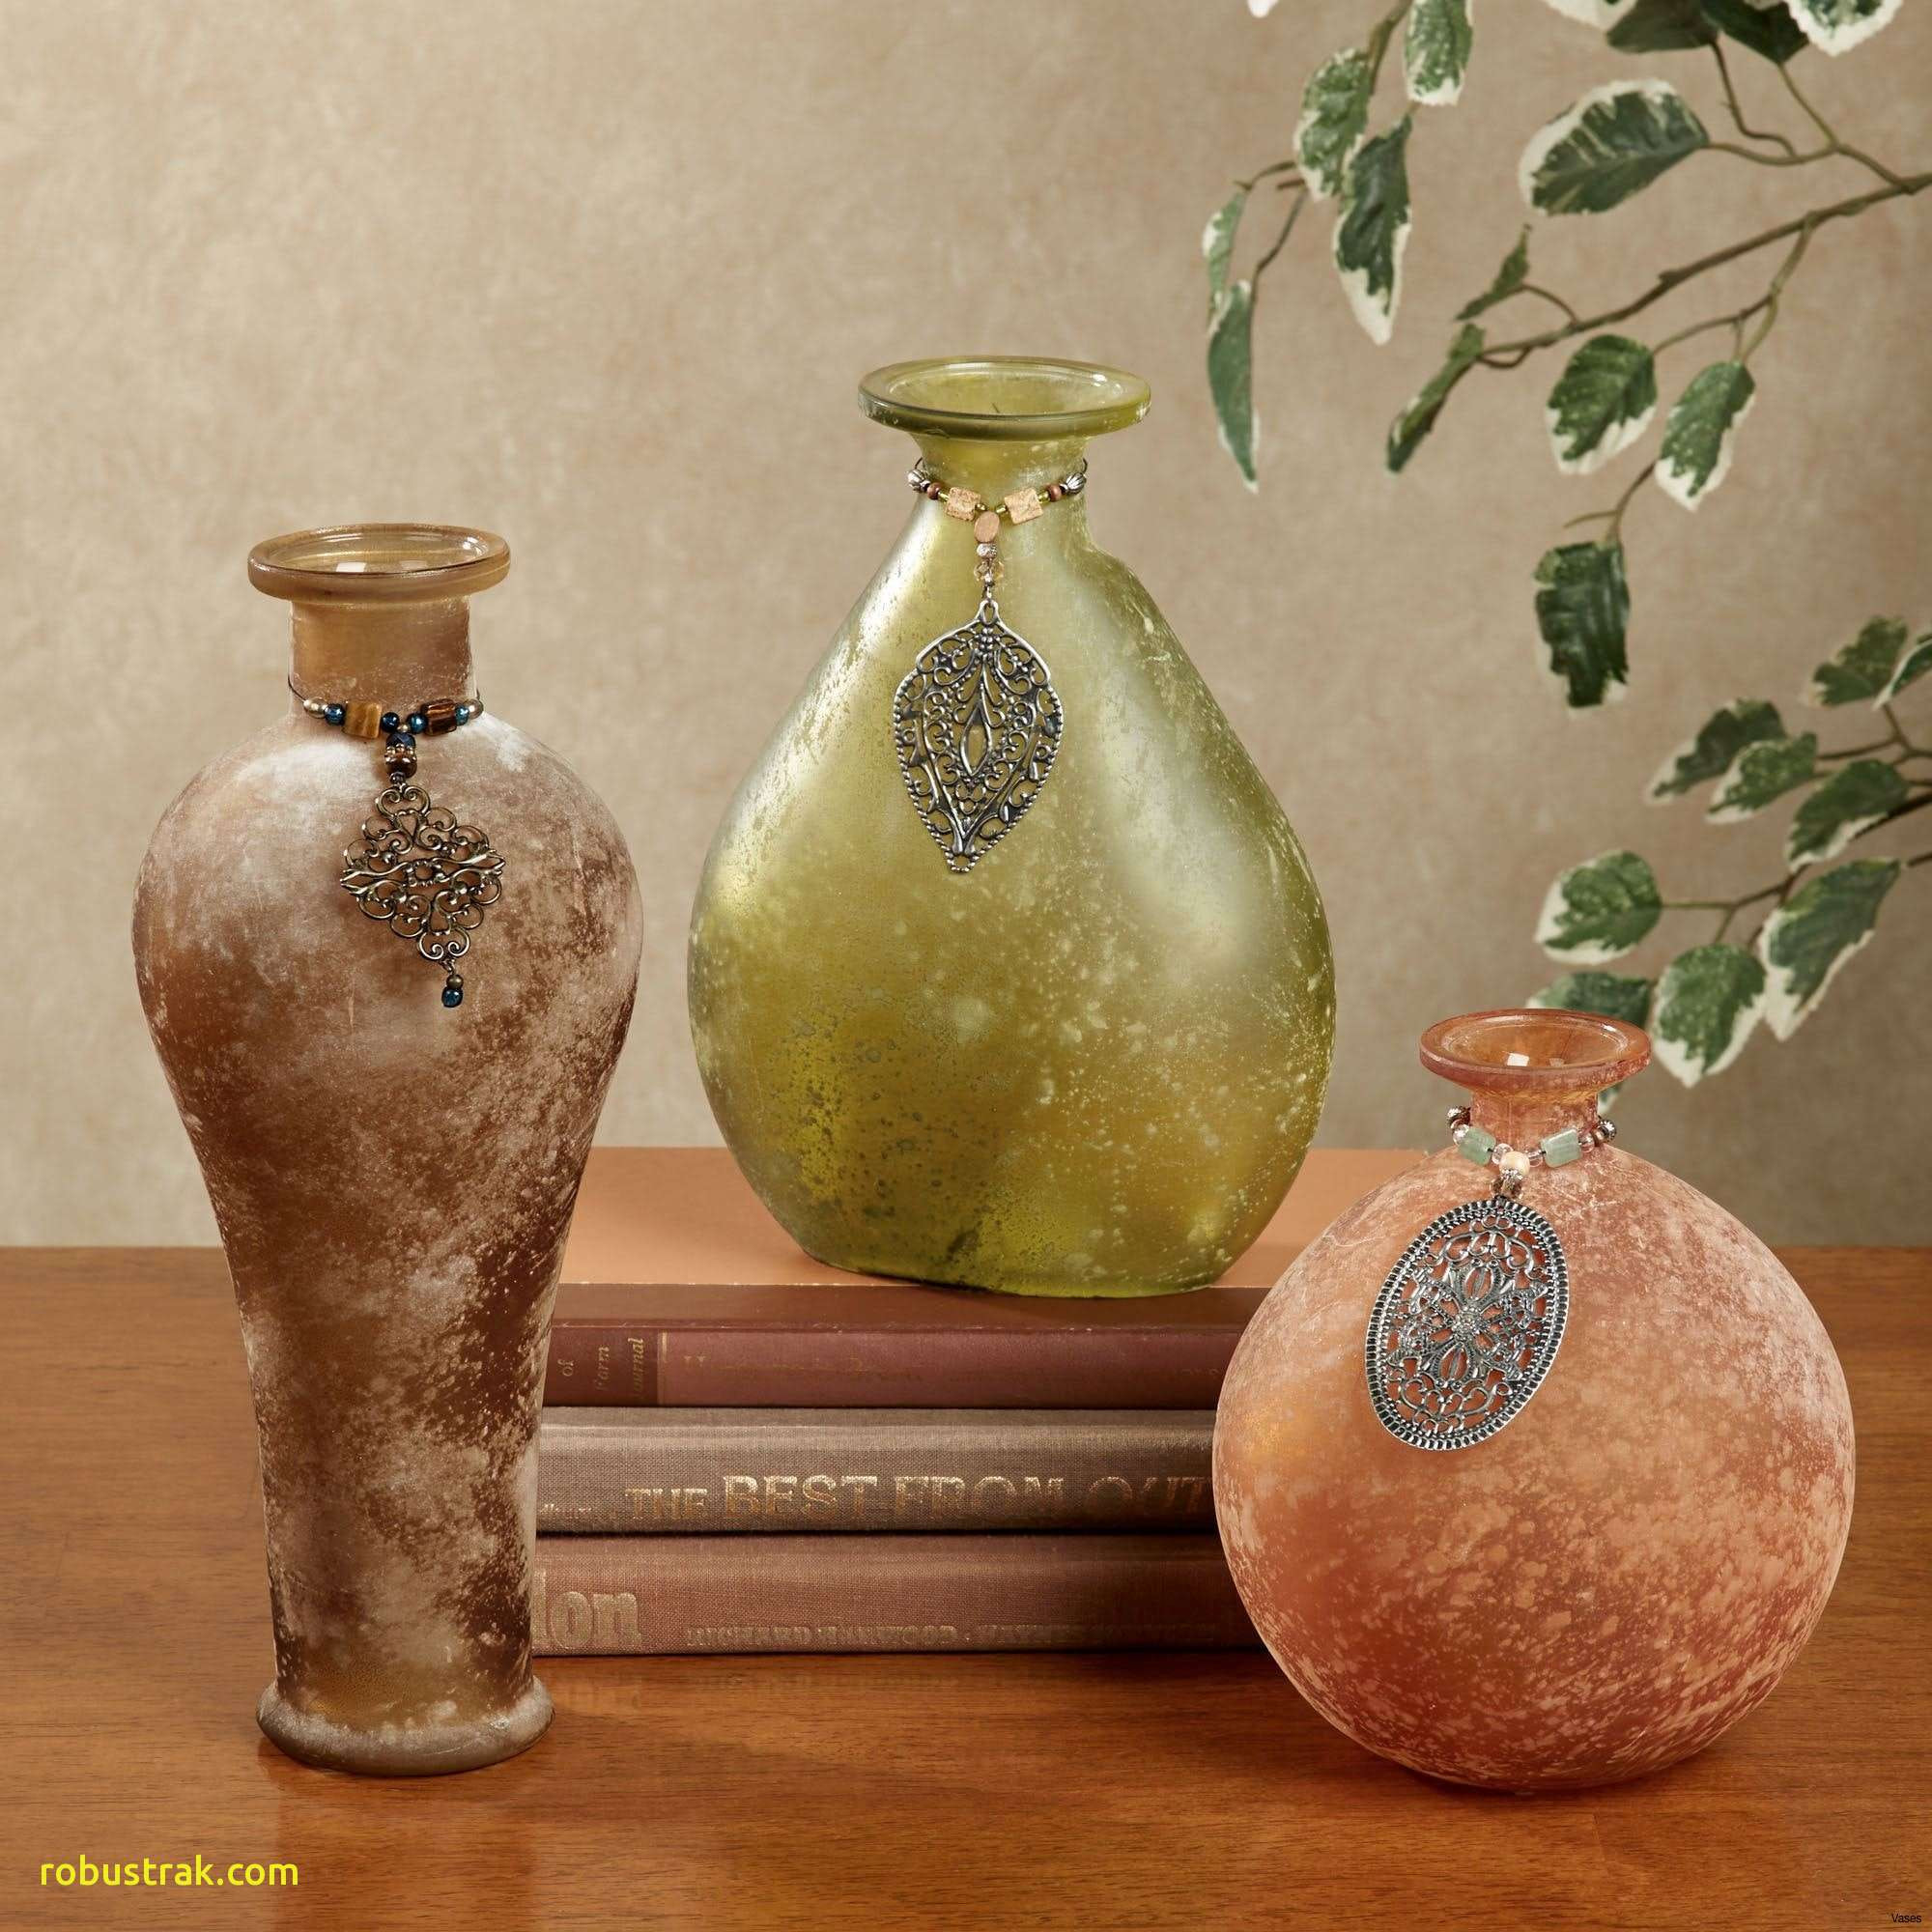 Bamboo Floor Vase Of Awesome Decorative Vases for Living Room Home Design Ideas with Regard to 2015 New Promotion S Floor Vase Decorativeh Vases Decorative Set Flower Vasos Decorativos Modern Fashion Brief